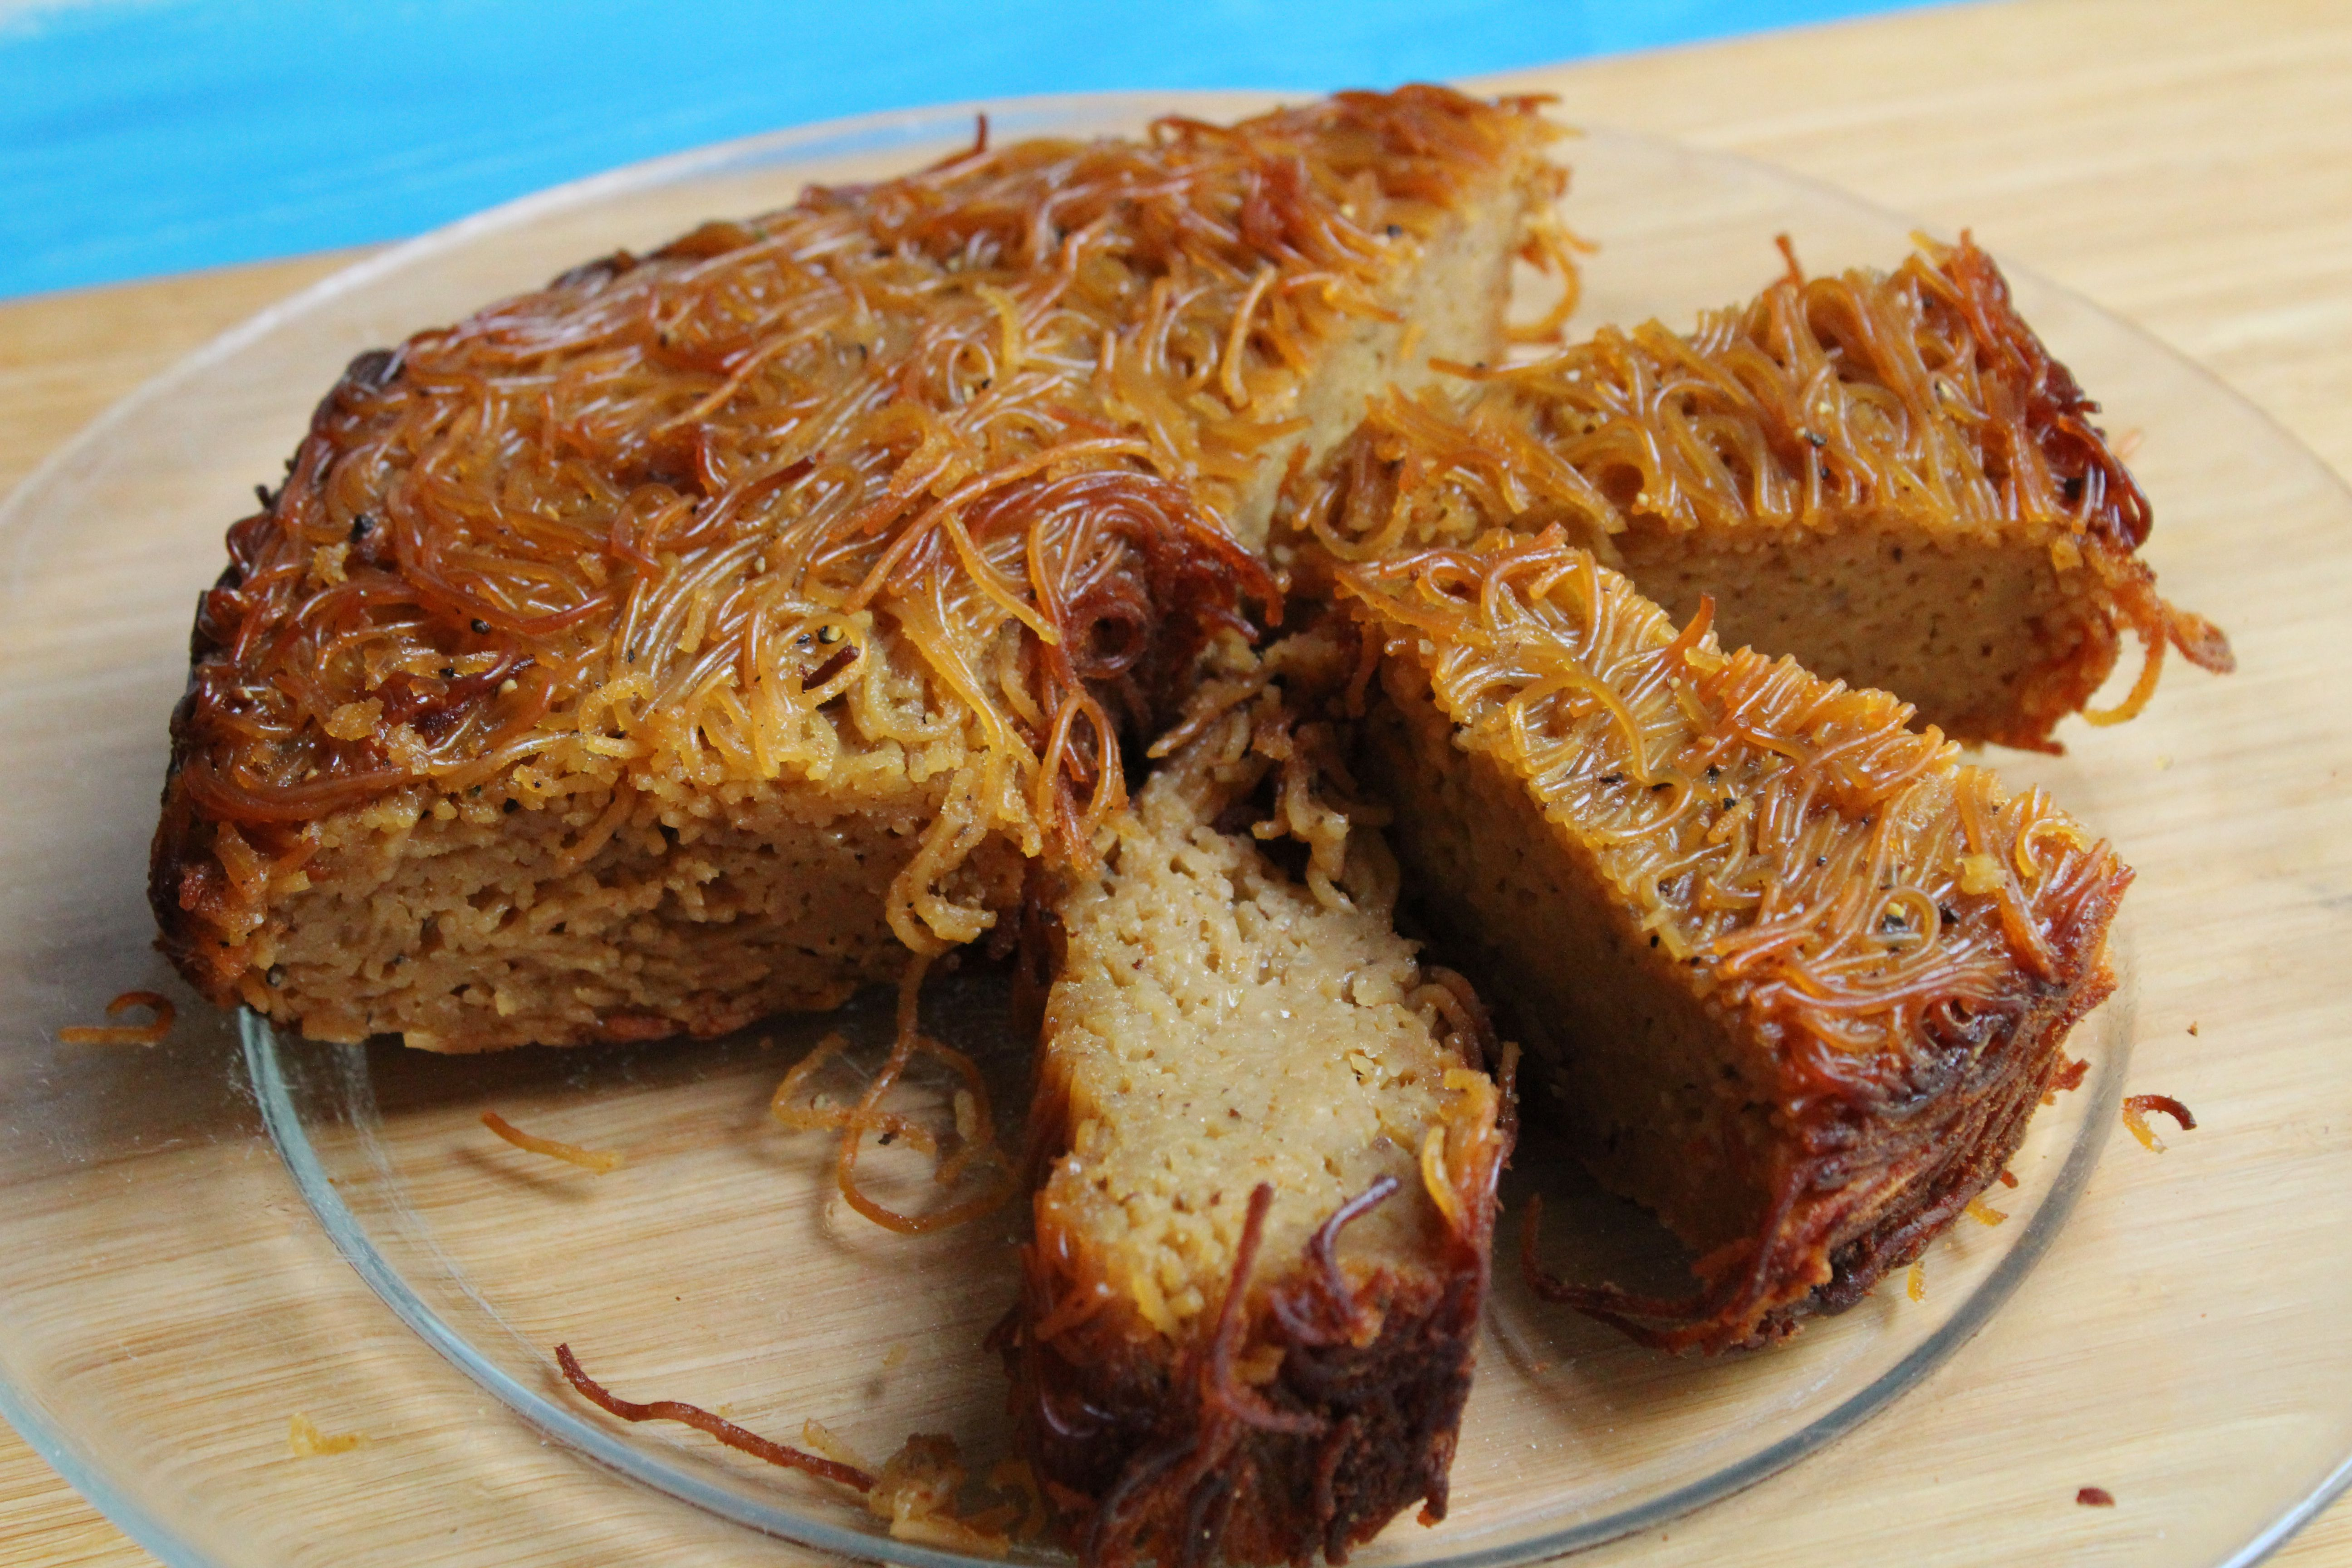 Jewish Yerushalmi kugel made with angel hair pasta cut into serving portions on a plate